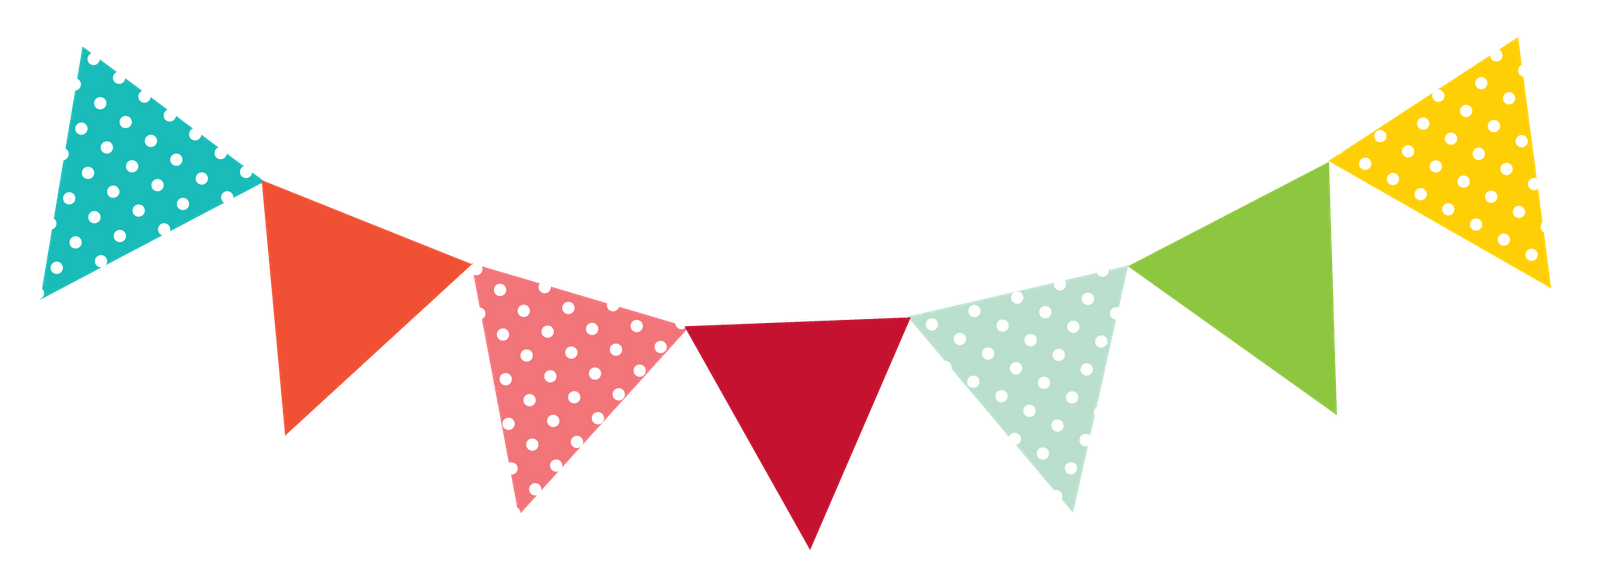 graphic royalty free Bunting clip art pixels. Chalkboard clipart flag banner.